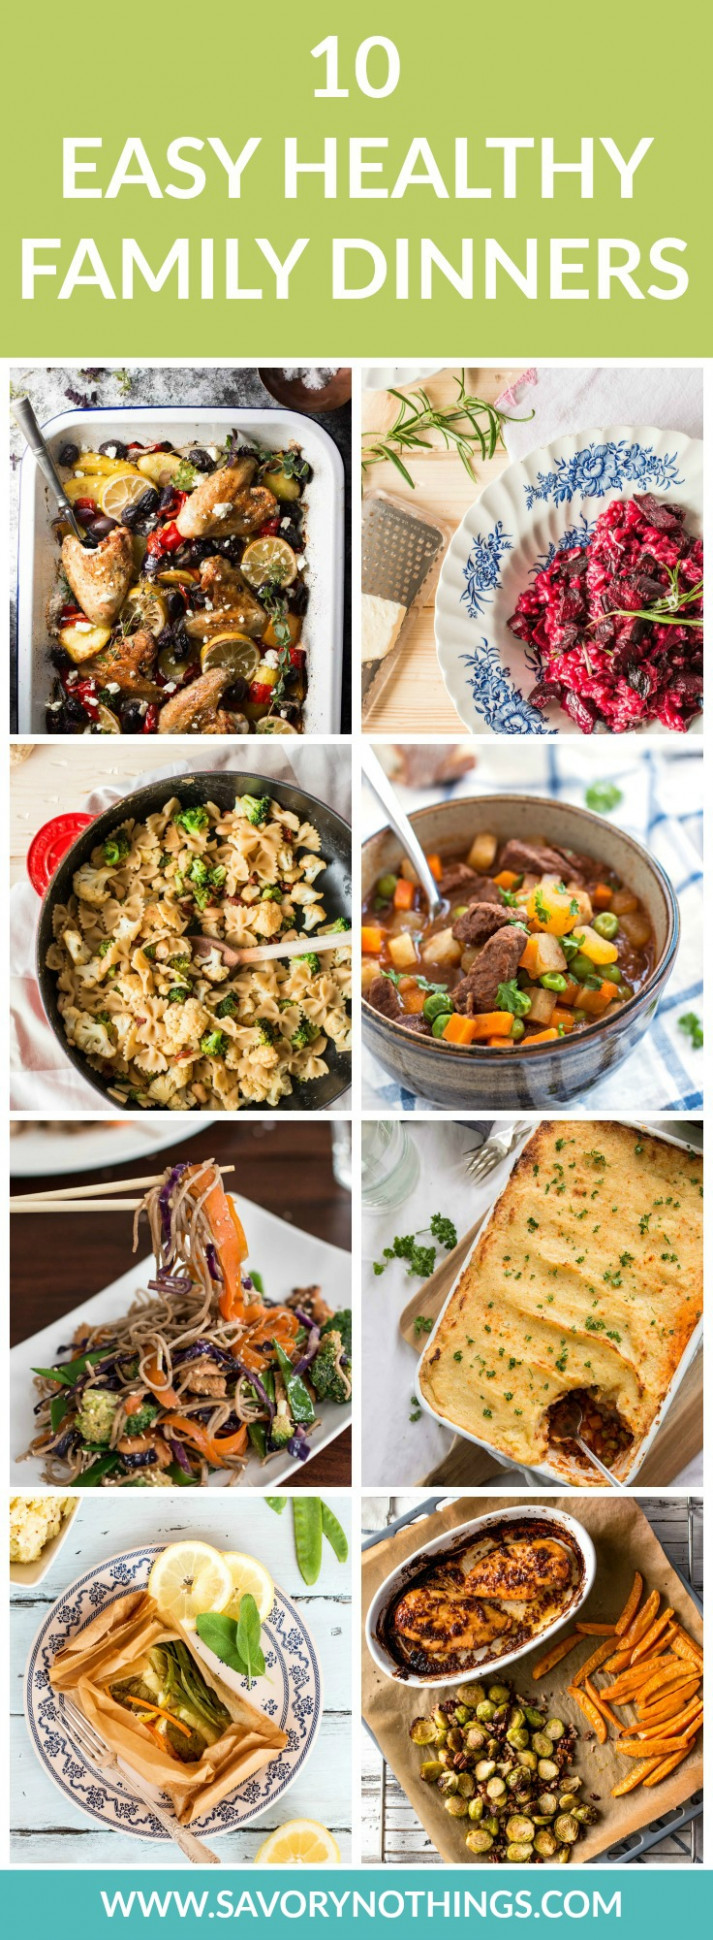 10 Healthy Family Dinners - Easy Recipes for Busy Weeknights - dinner recipes healthy family